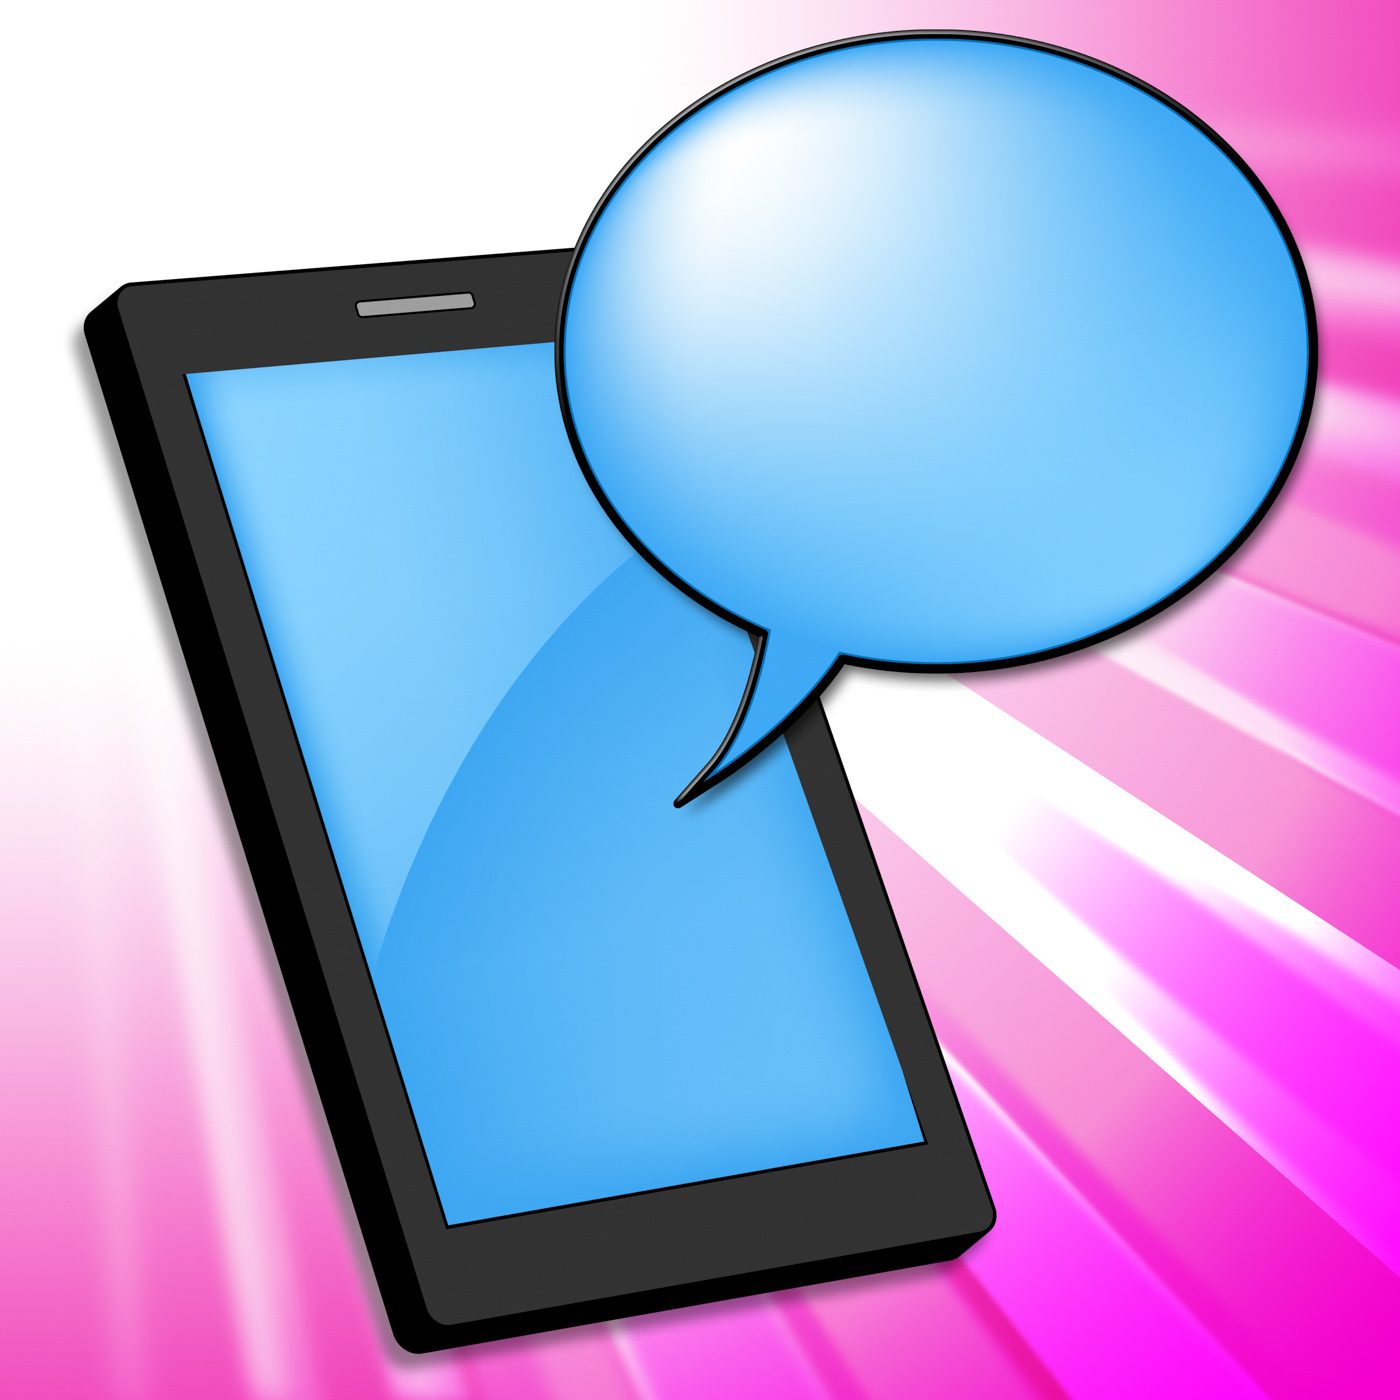 Mobile phone indicates smartphone online and chatting photo